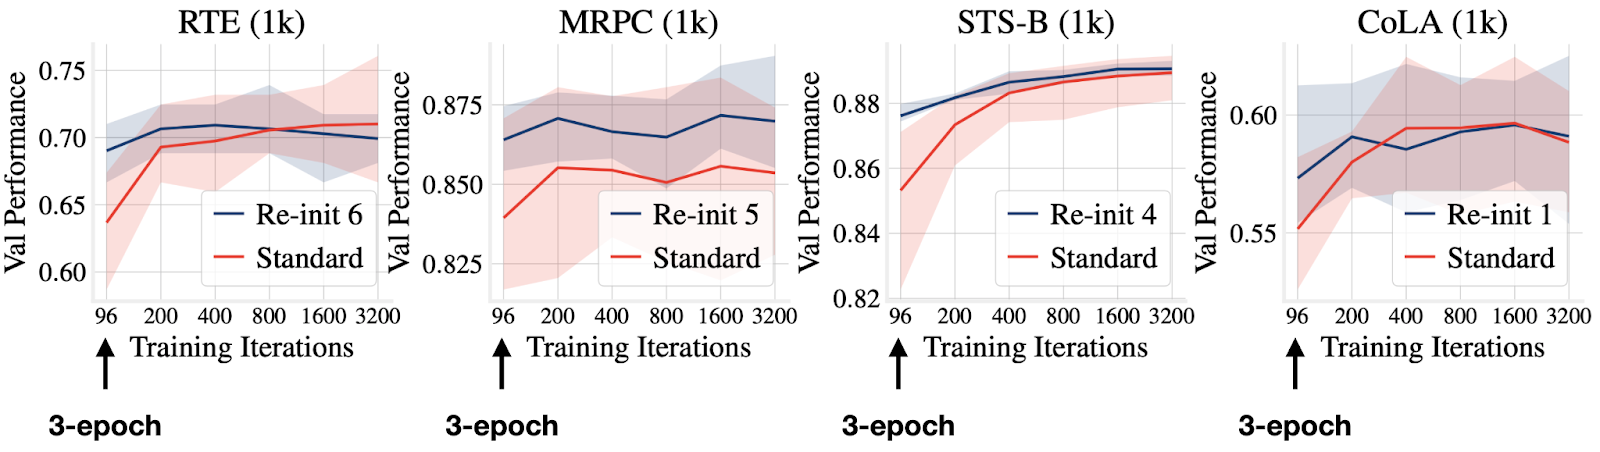 ASAPP—We also studied the conventional 3-epoch fine-tuning setup of BERT. Through extensive experiments on various datasets, we observe that the widely adopted 3-epoch setup is insufficient for few-sample datasets. Even with few training examples, the model still requires hundreds of updates to converge